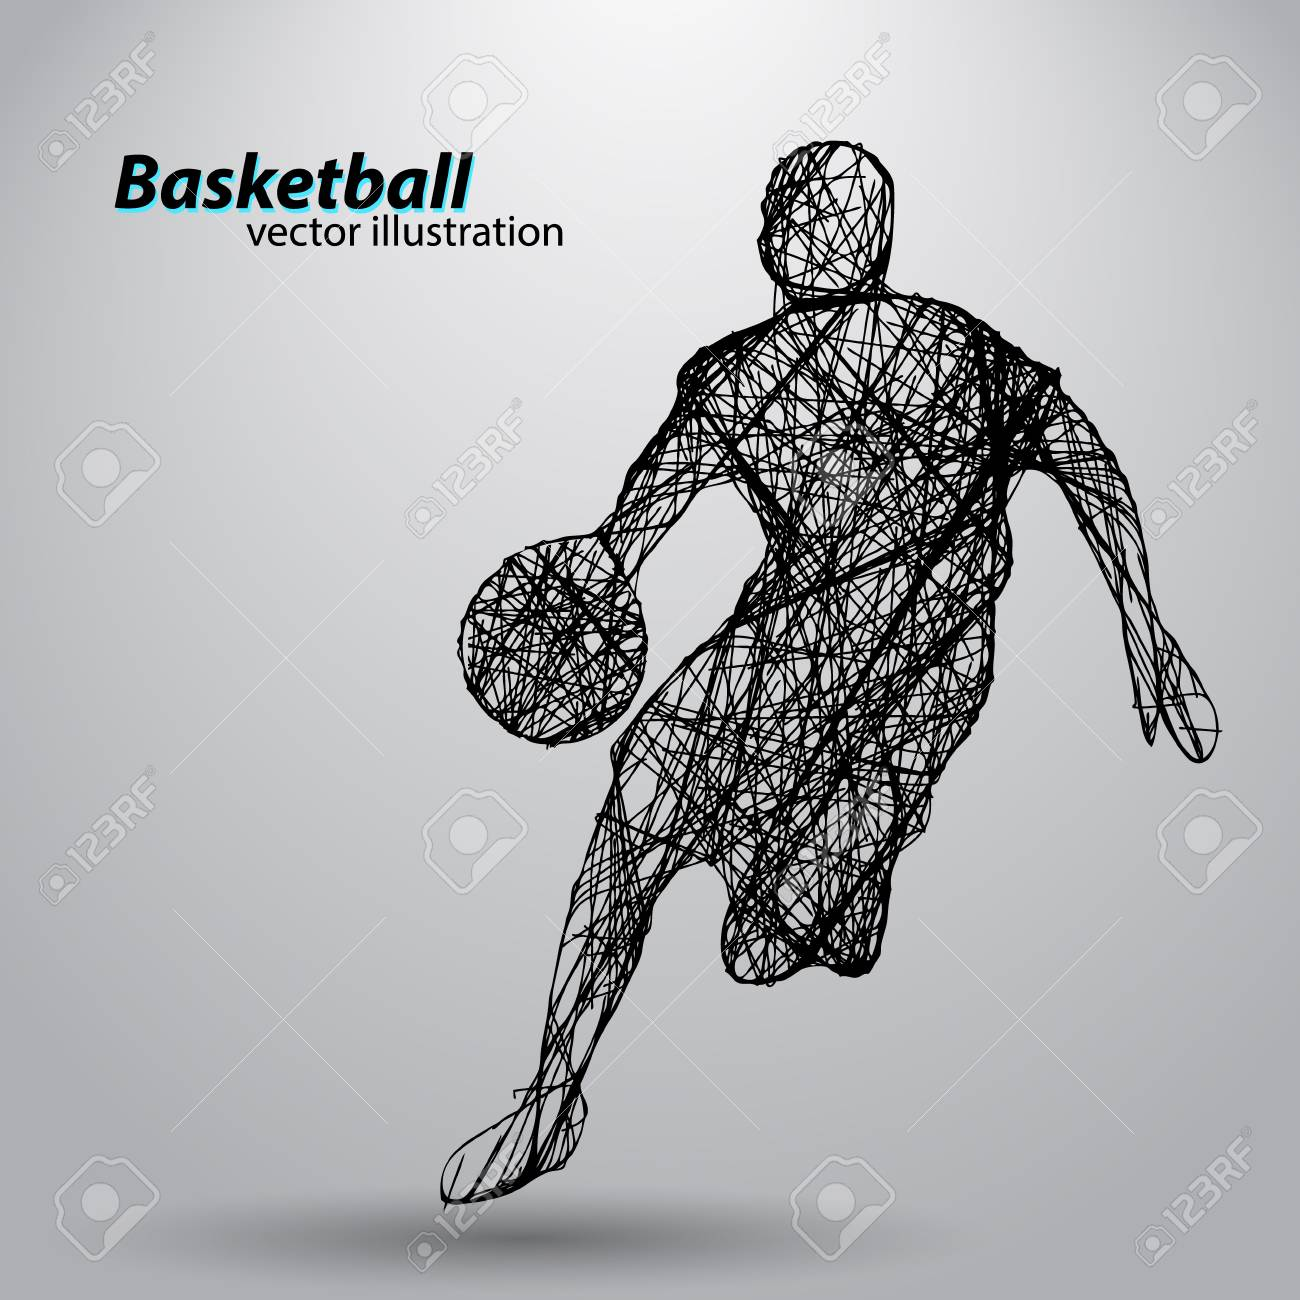 Silhouette of a basketball player. Background and text on a separate layer, color can be changed in one click - 67503177